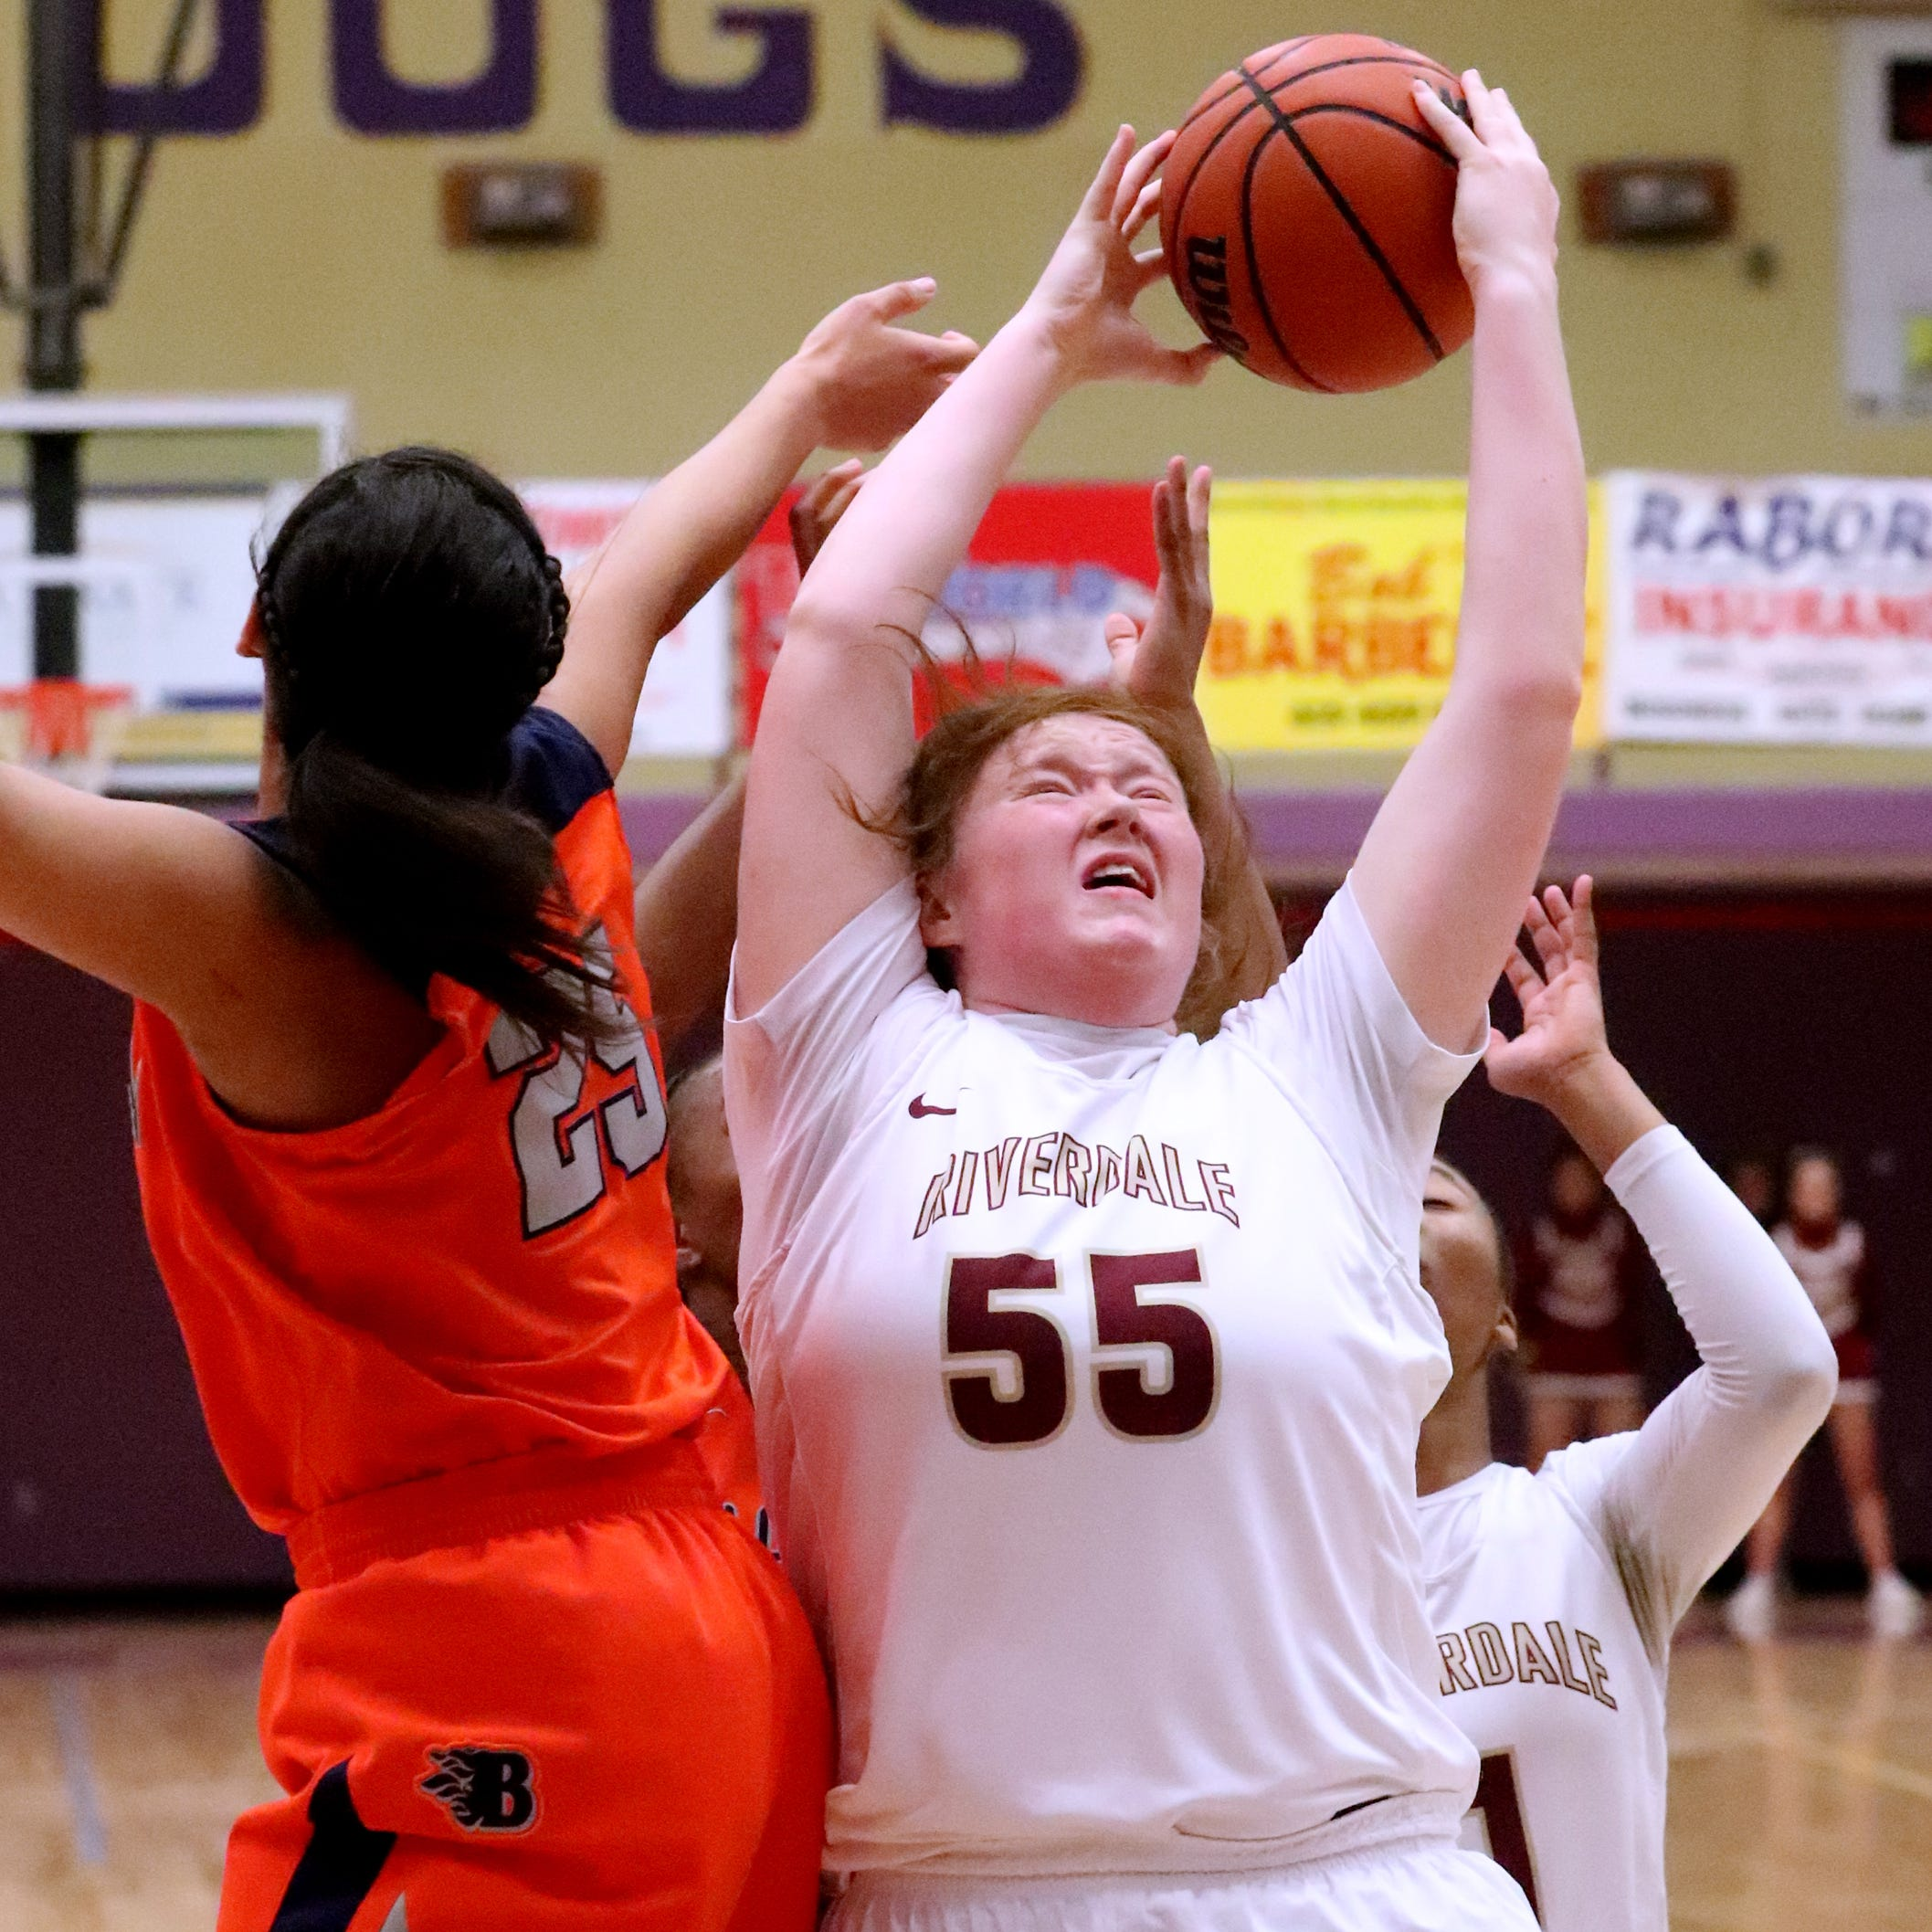 Riverdale center Katelyn Worley gets in better shape, emerges as key cog in postseason run